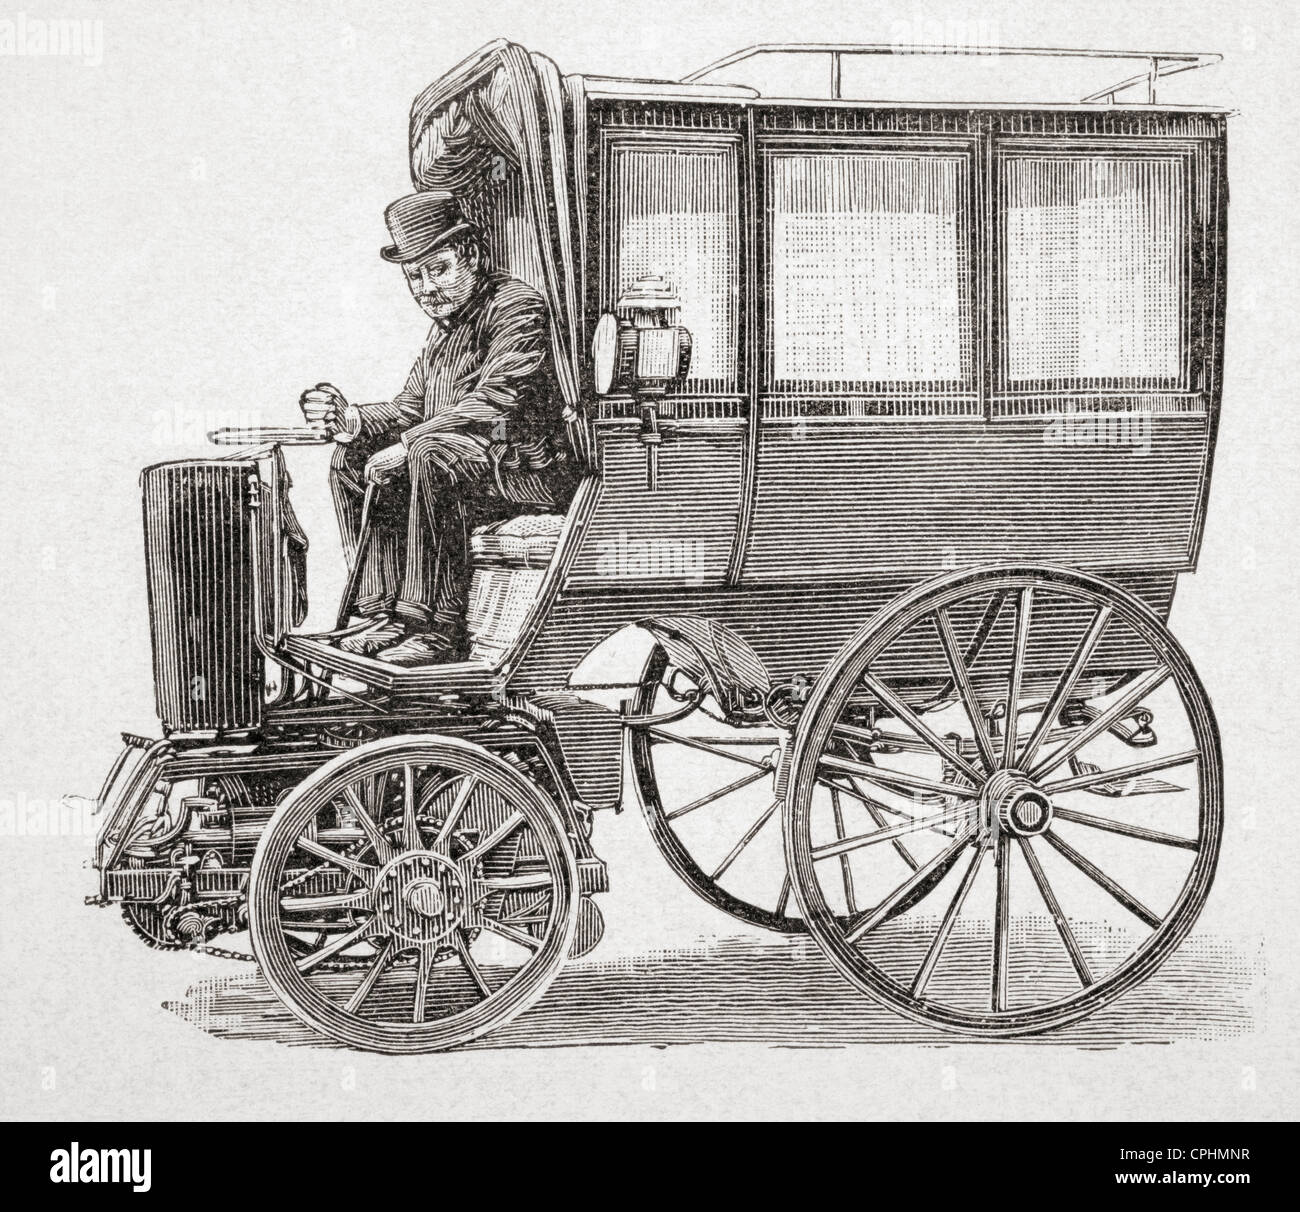 A 19th century petrol driven motor carriage designed by Victor Etienne Prétot. From L'Illustration published - Stock Image